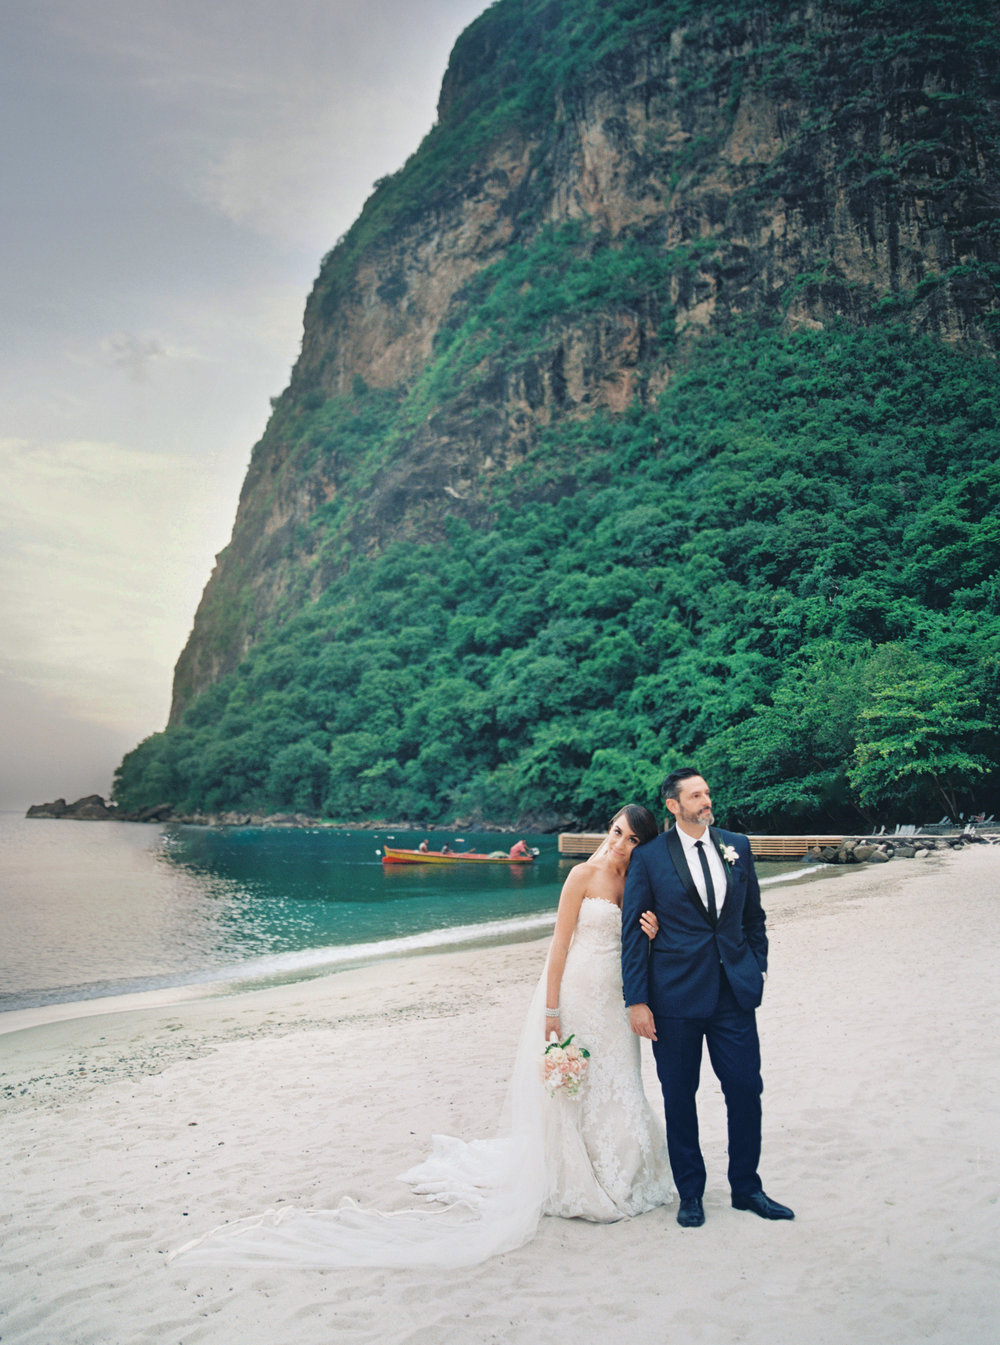 096Delmary's & Daniel : ELOPEMENT : ST. LUCIA : CARIBBEAN : PHOTO & VIDEO : DESTINATION : OUTLIVE CREATIVE : 2016 .jpg